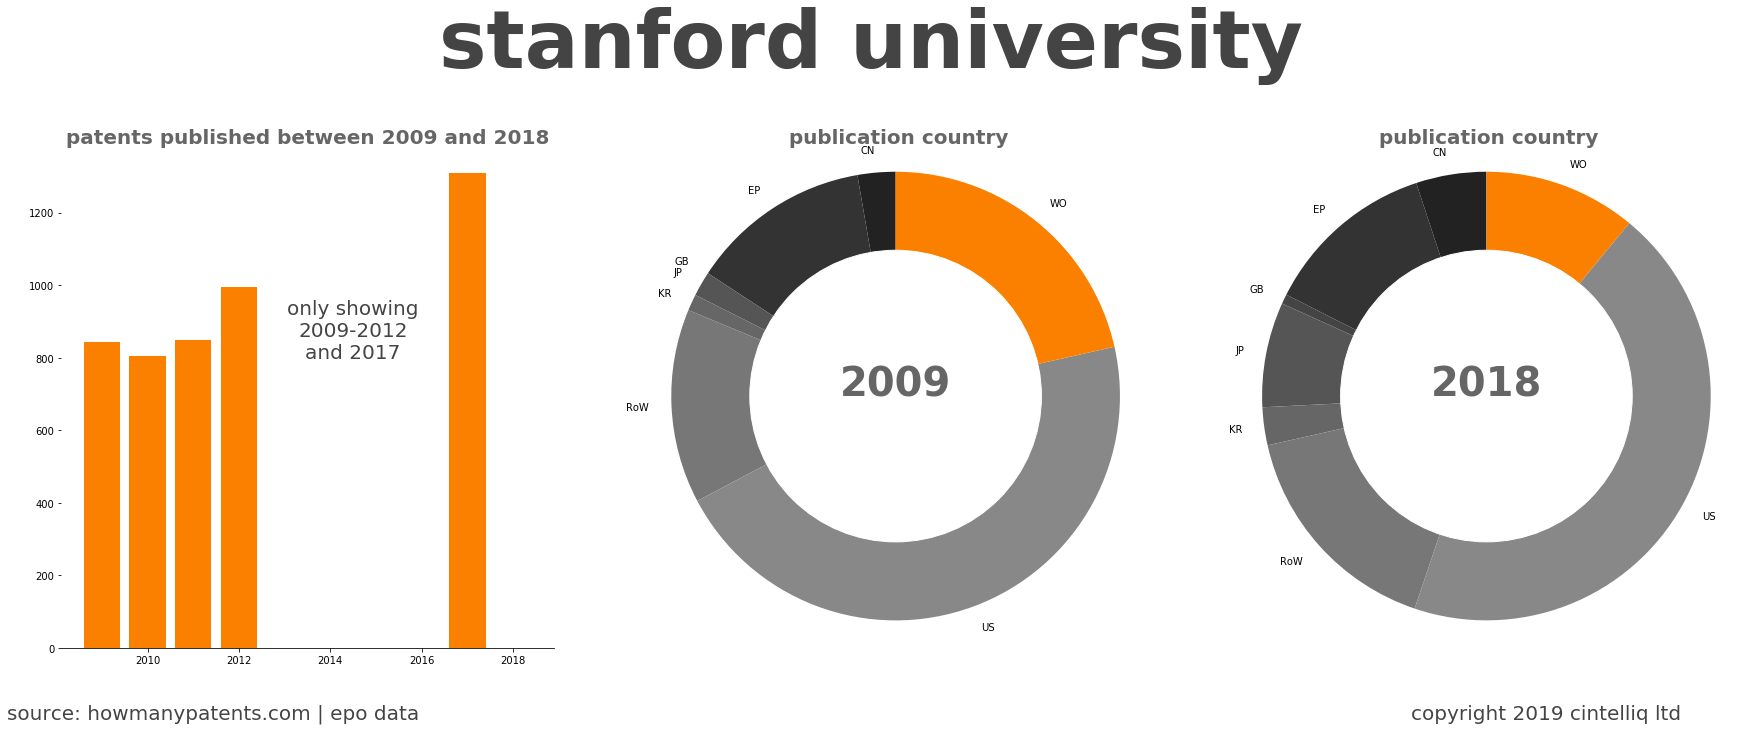 summary of patents for Stanford University